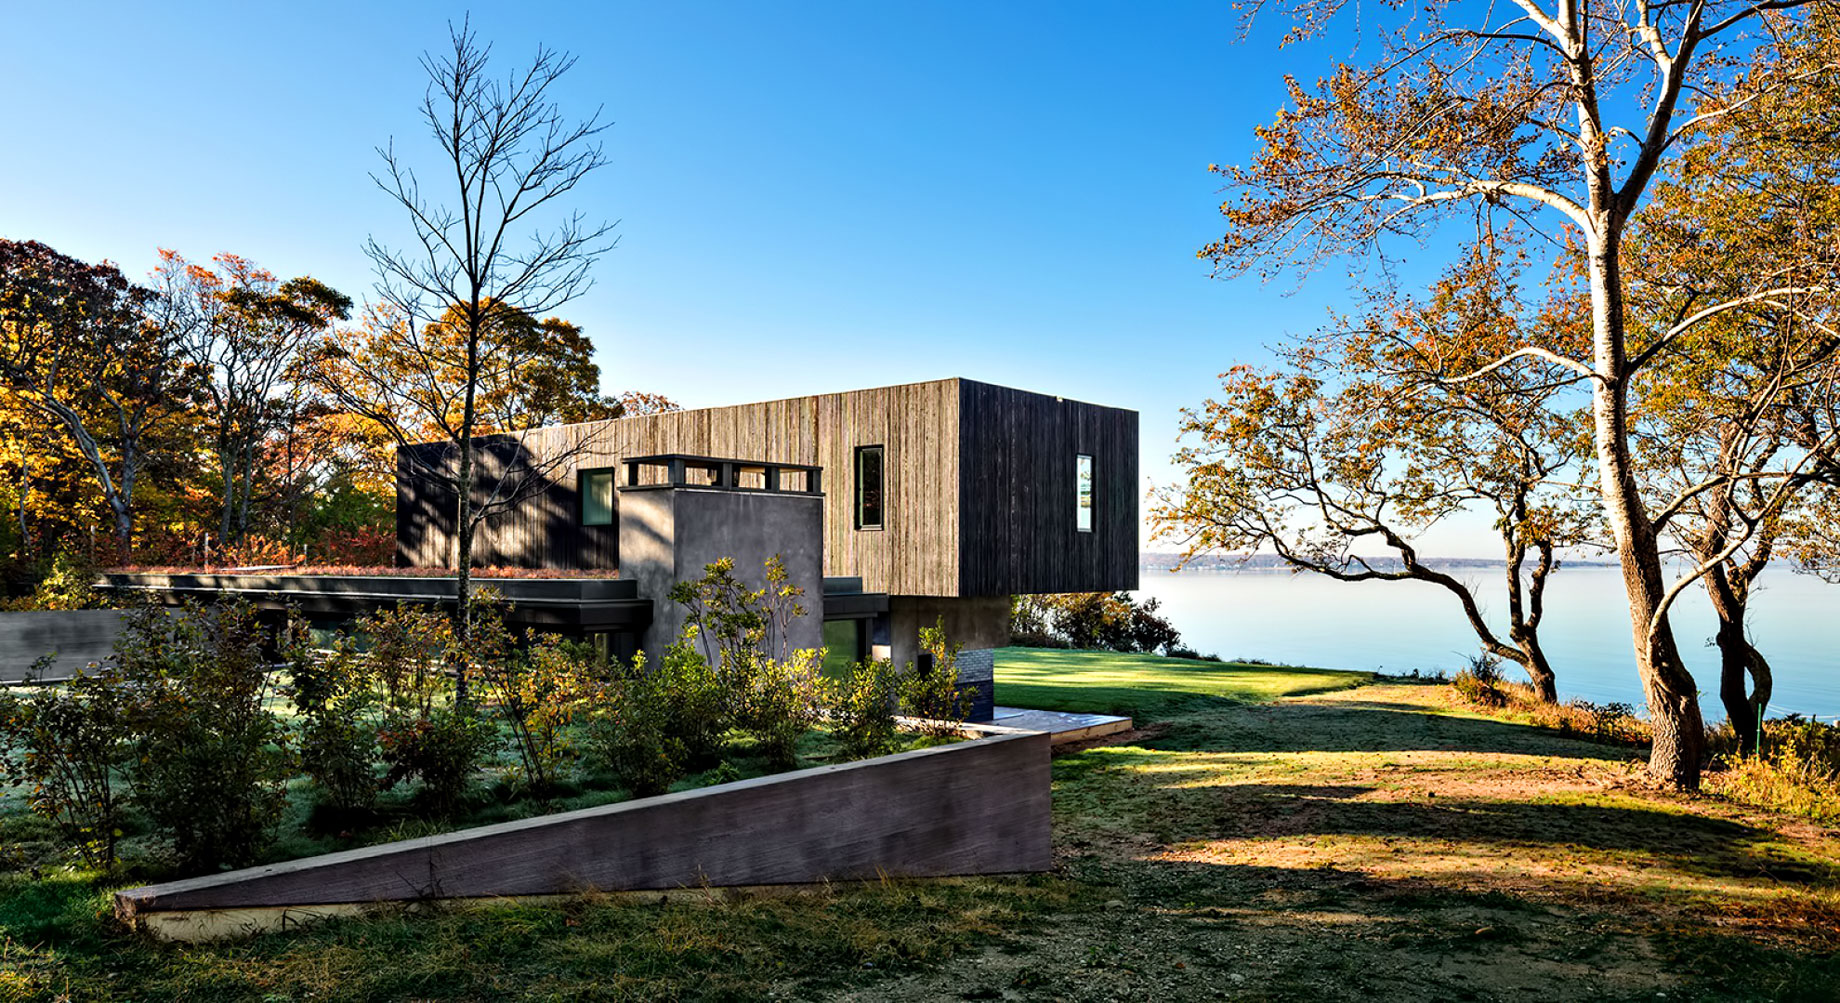 Shore House Luxury Residence - Sag Harbor, NY, USA